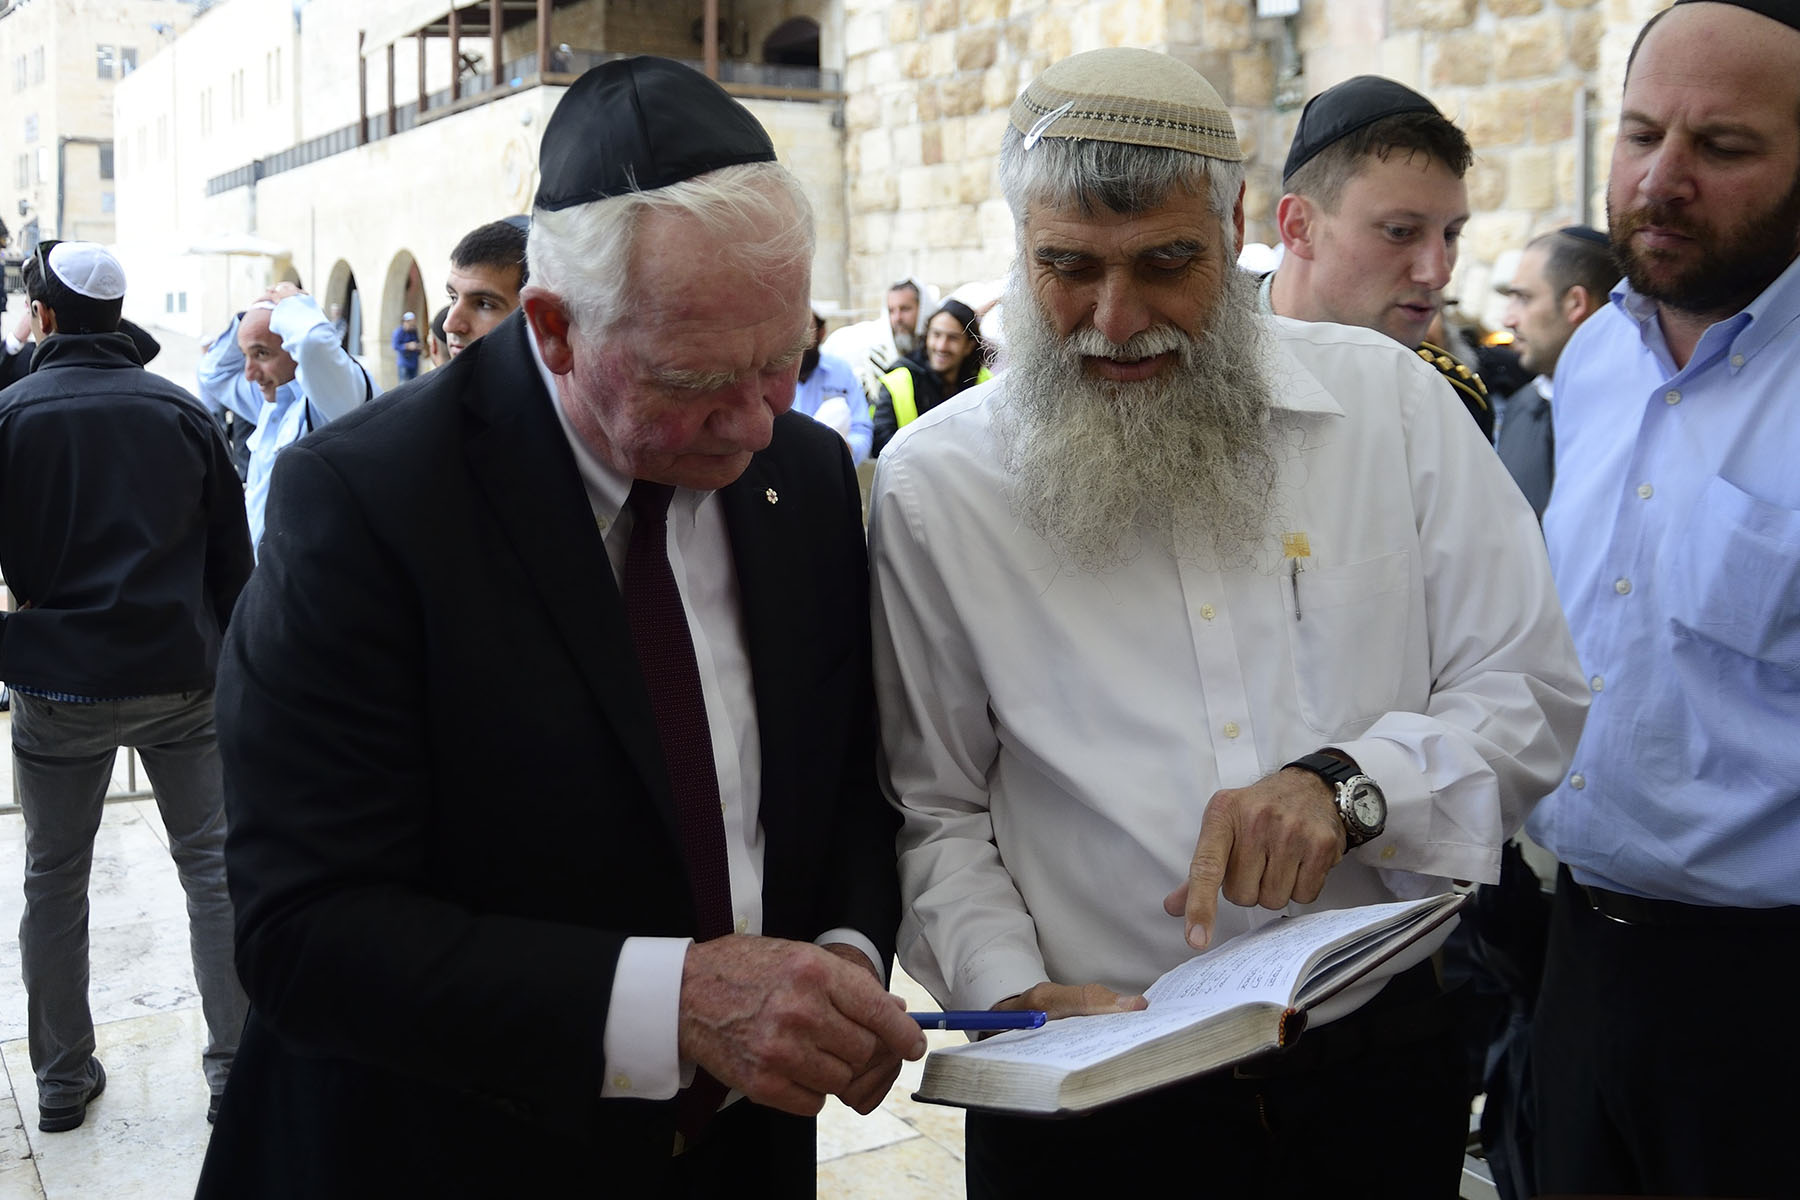 Next, Their Excellencies visited the Western Wall.